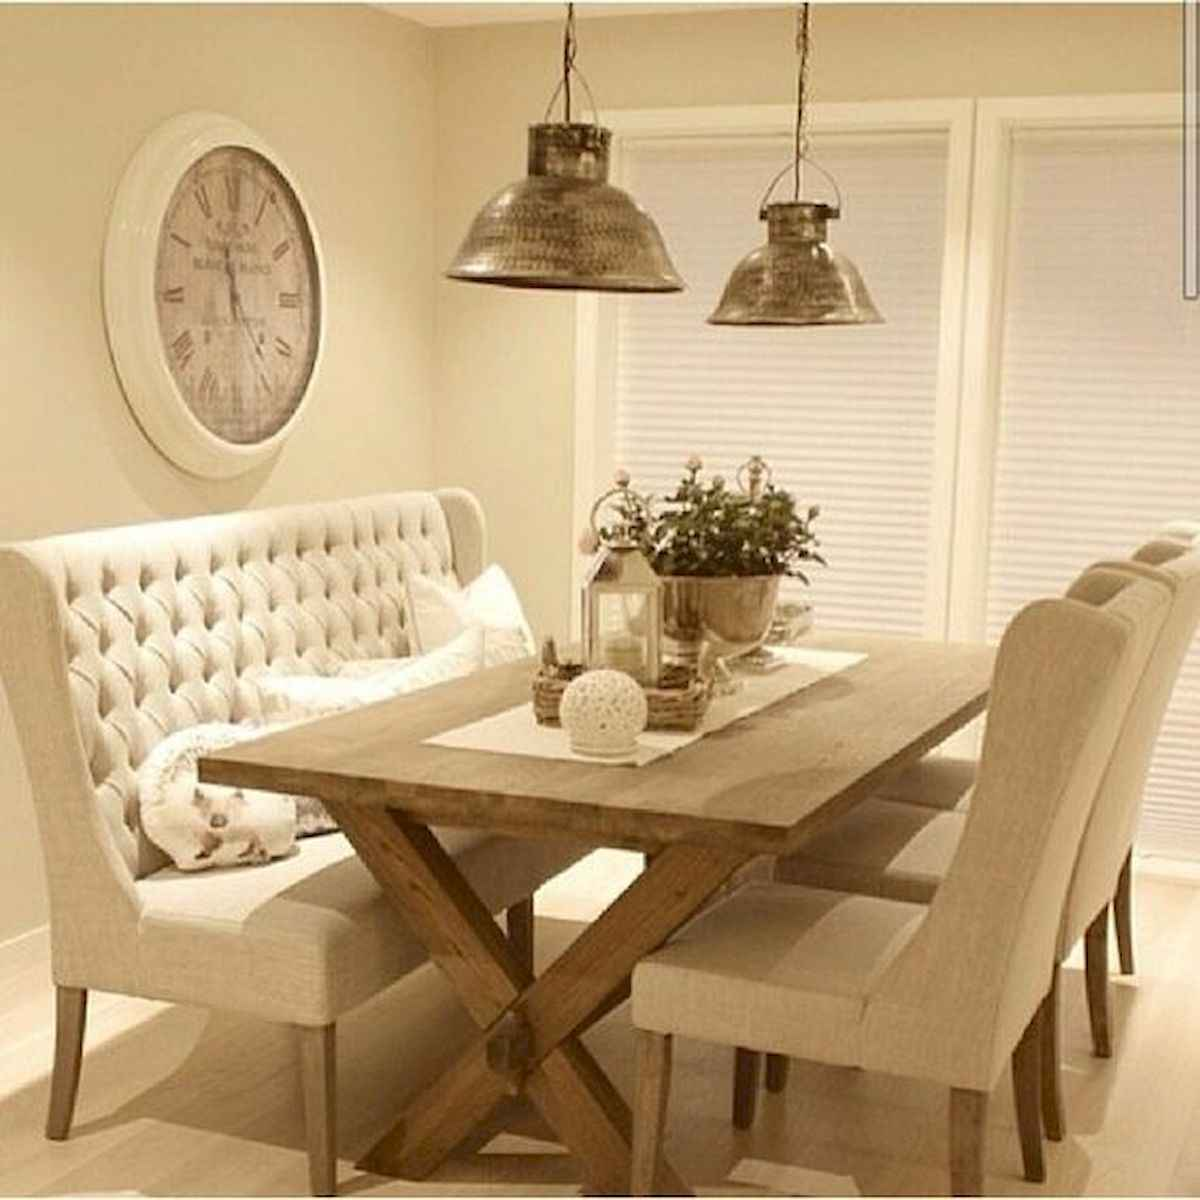 55 Stunning DIY Projects Furniture Tables Dining Rooms Design Ideas (26)